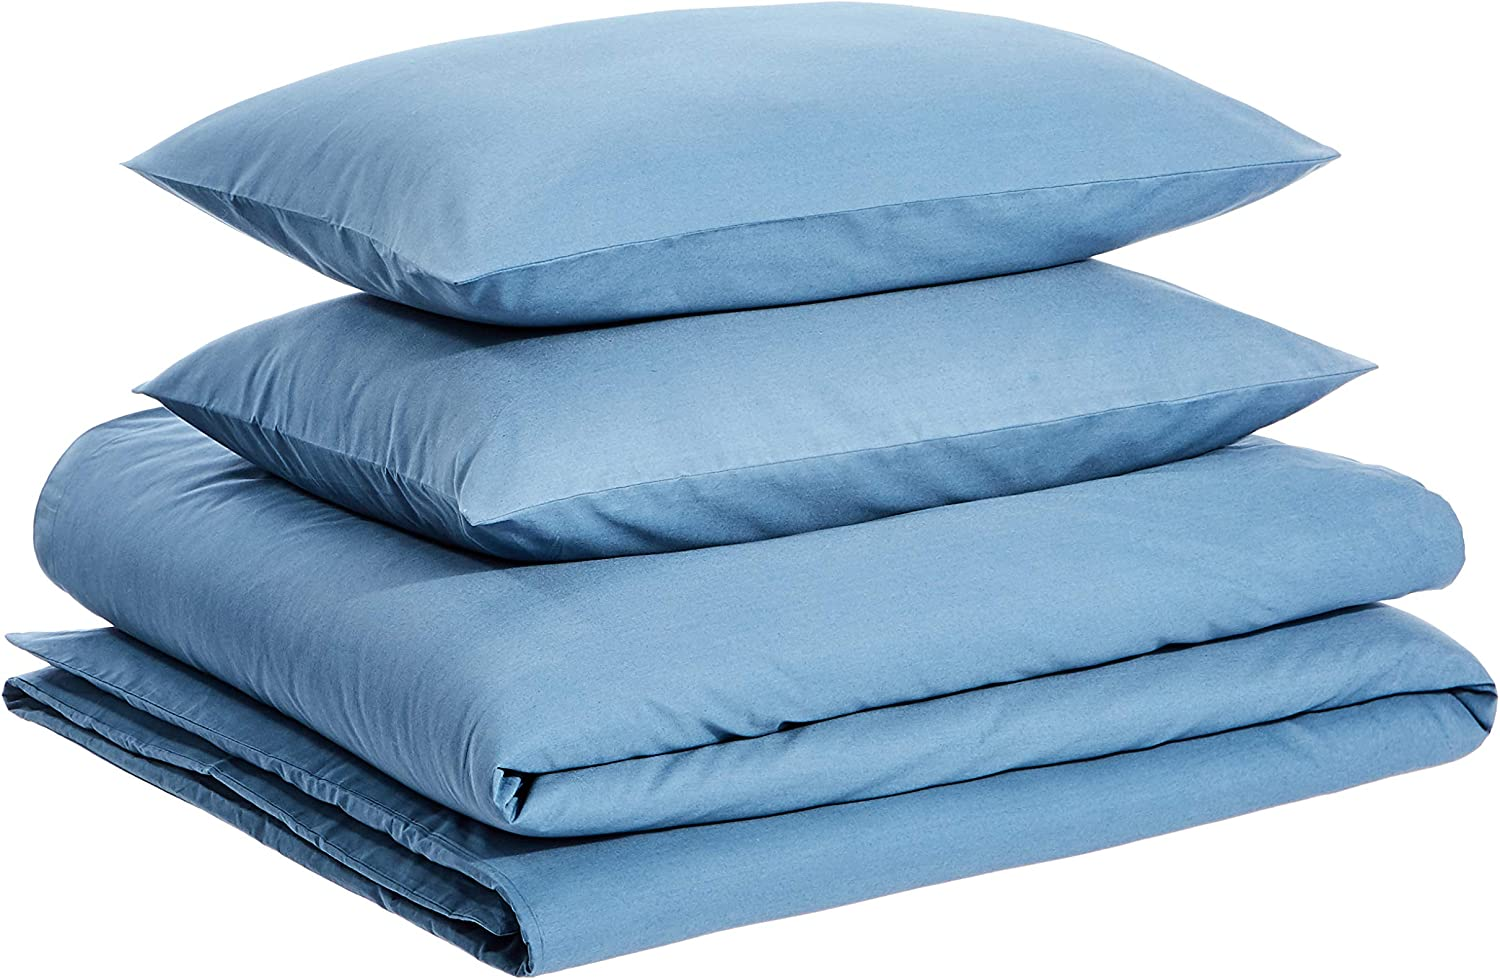 AmazonBasics Brushed Percale Cotton Duvet Comforter Cover Set, King, Dark Teal